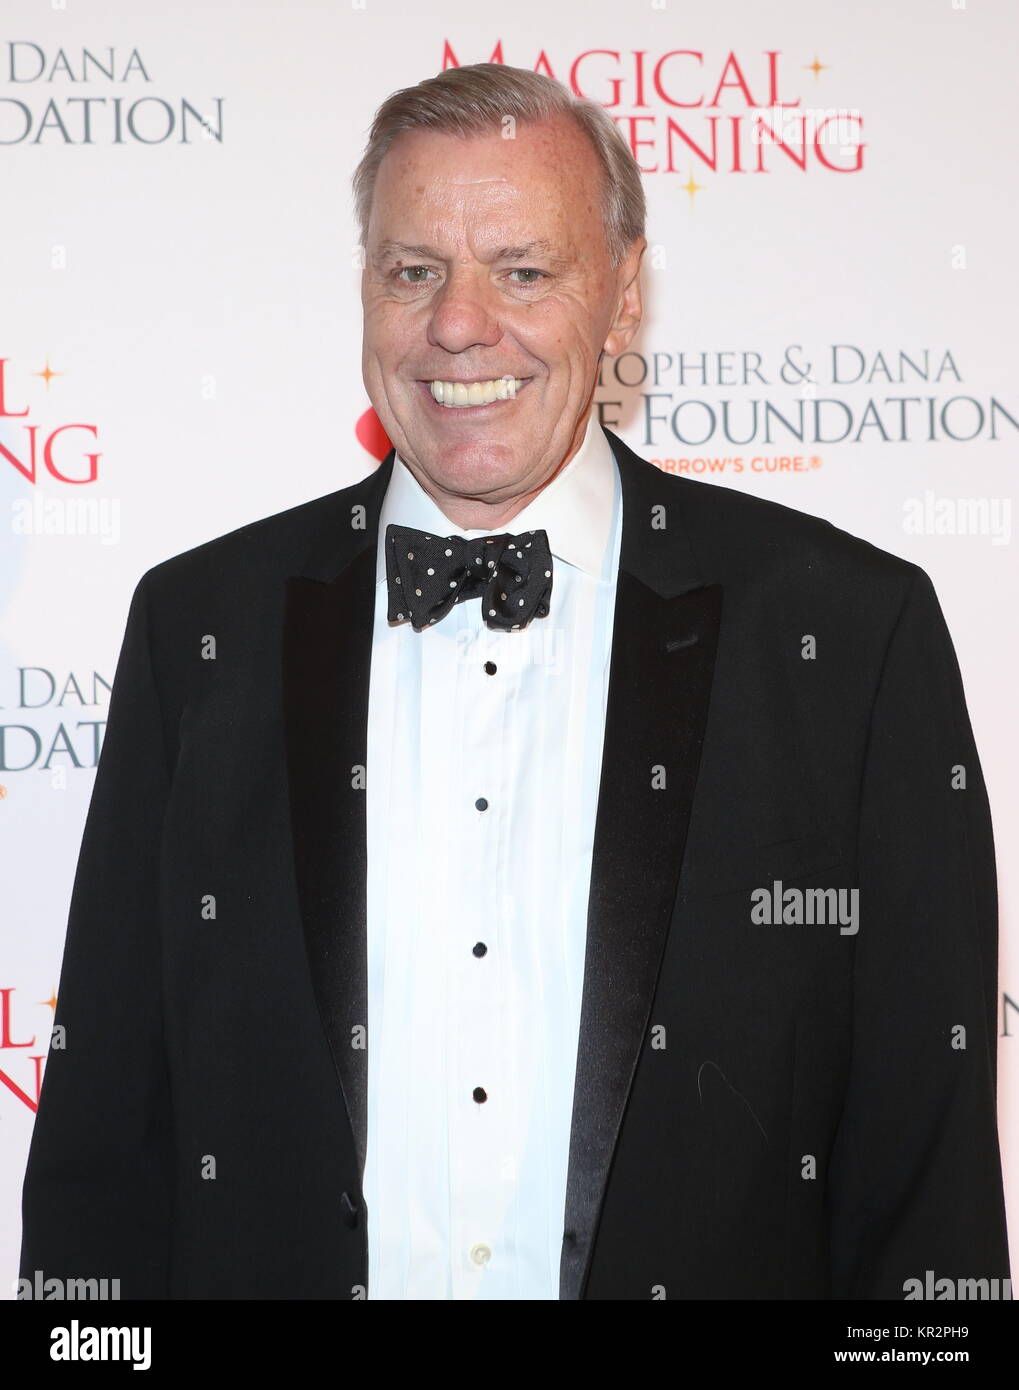 The Christopher & Dana Reeve Foundation Gala at the Conrad - Arrivals  Featuring: Peter Wilderotter Where: New - Stock Image